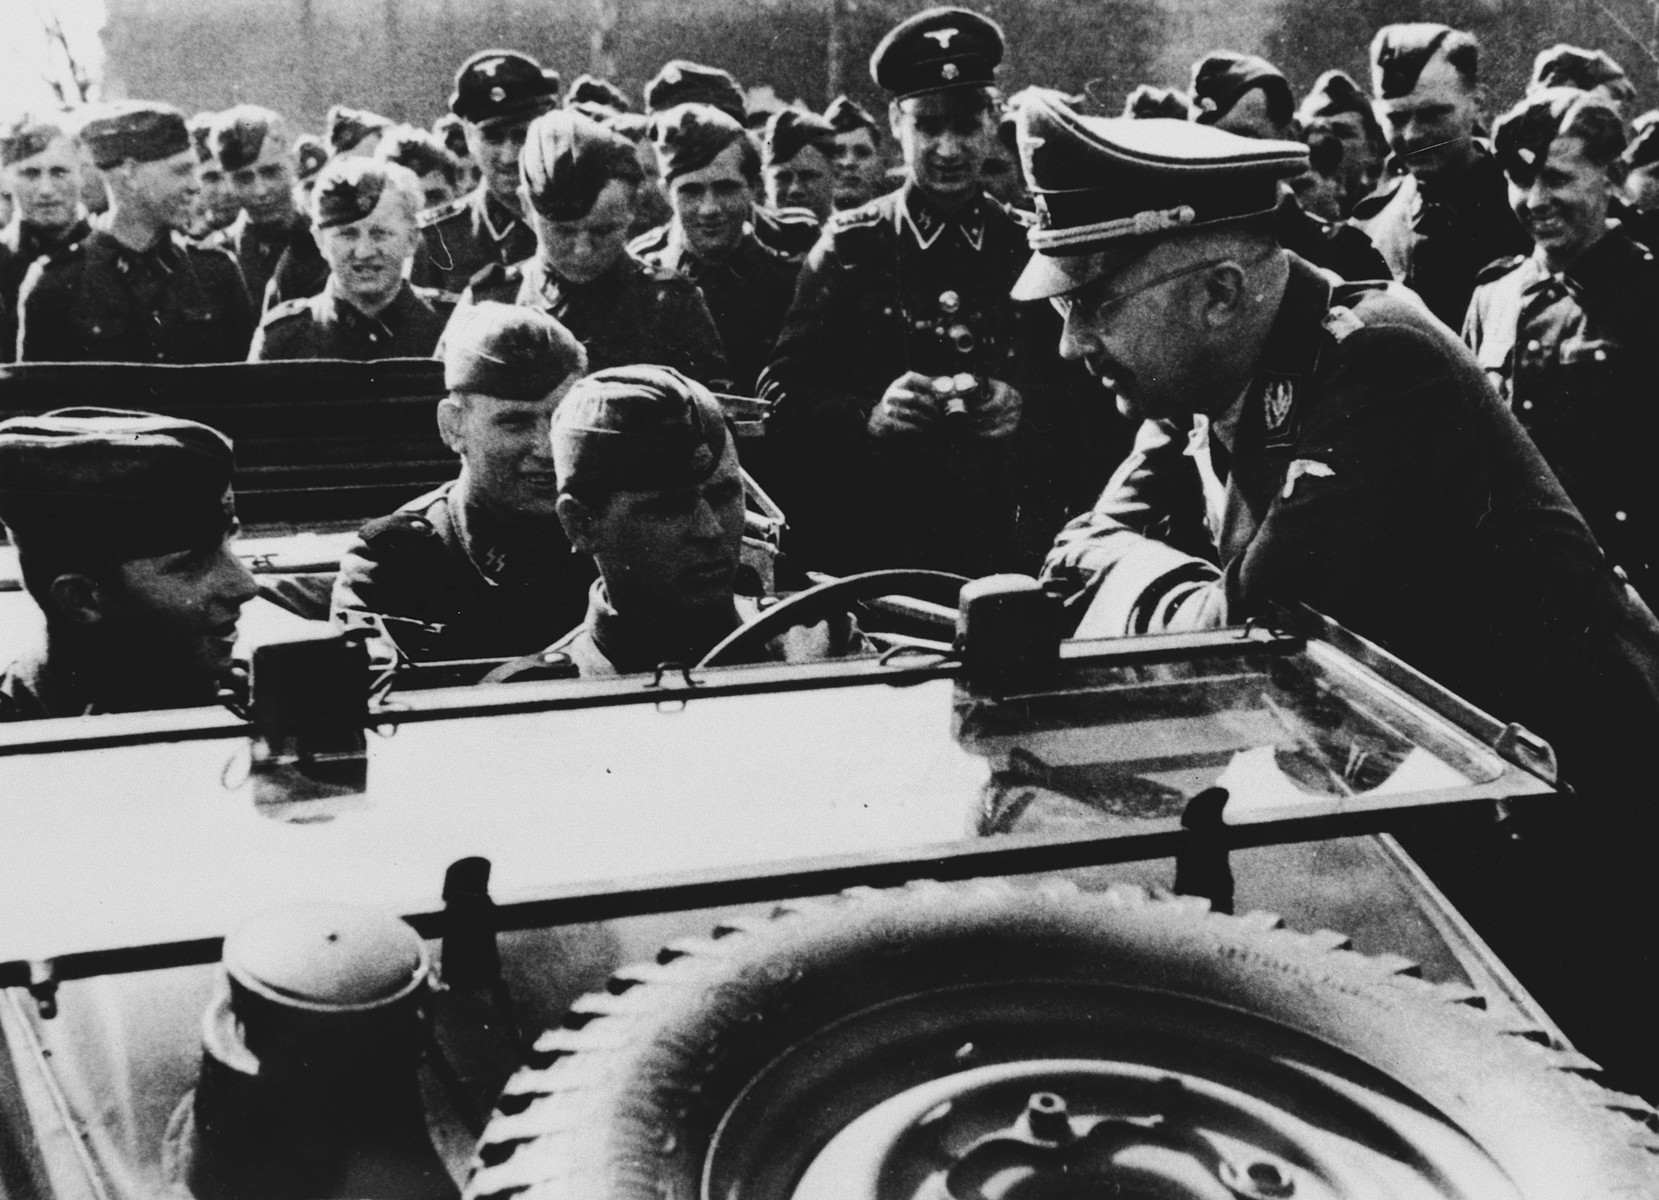 Reichsfuehrer Heinrich Himmler talks with German troops seated in an open military vehicle in an unidentified location.  According to a researcher Himmler is talking with unknown soldiers of Gatz von Berlichingen. The photo was taken in Thouars on April 10, 1944 during the formation of the SS-Division Gatz von Berlichingen.  The researcher received this information from Himmlers adjutant Werner Grothmann who Iidentified this and several other photos from the same time.